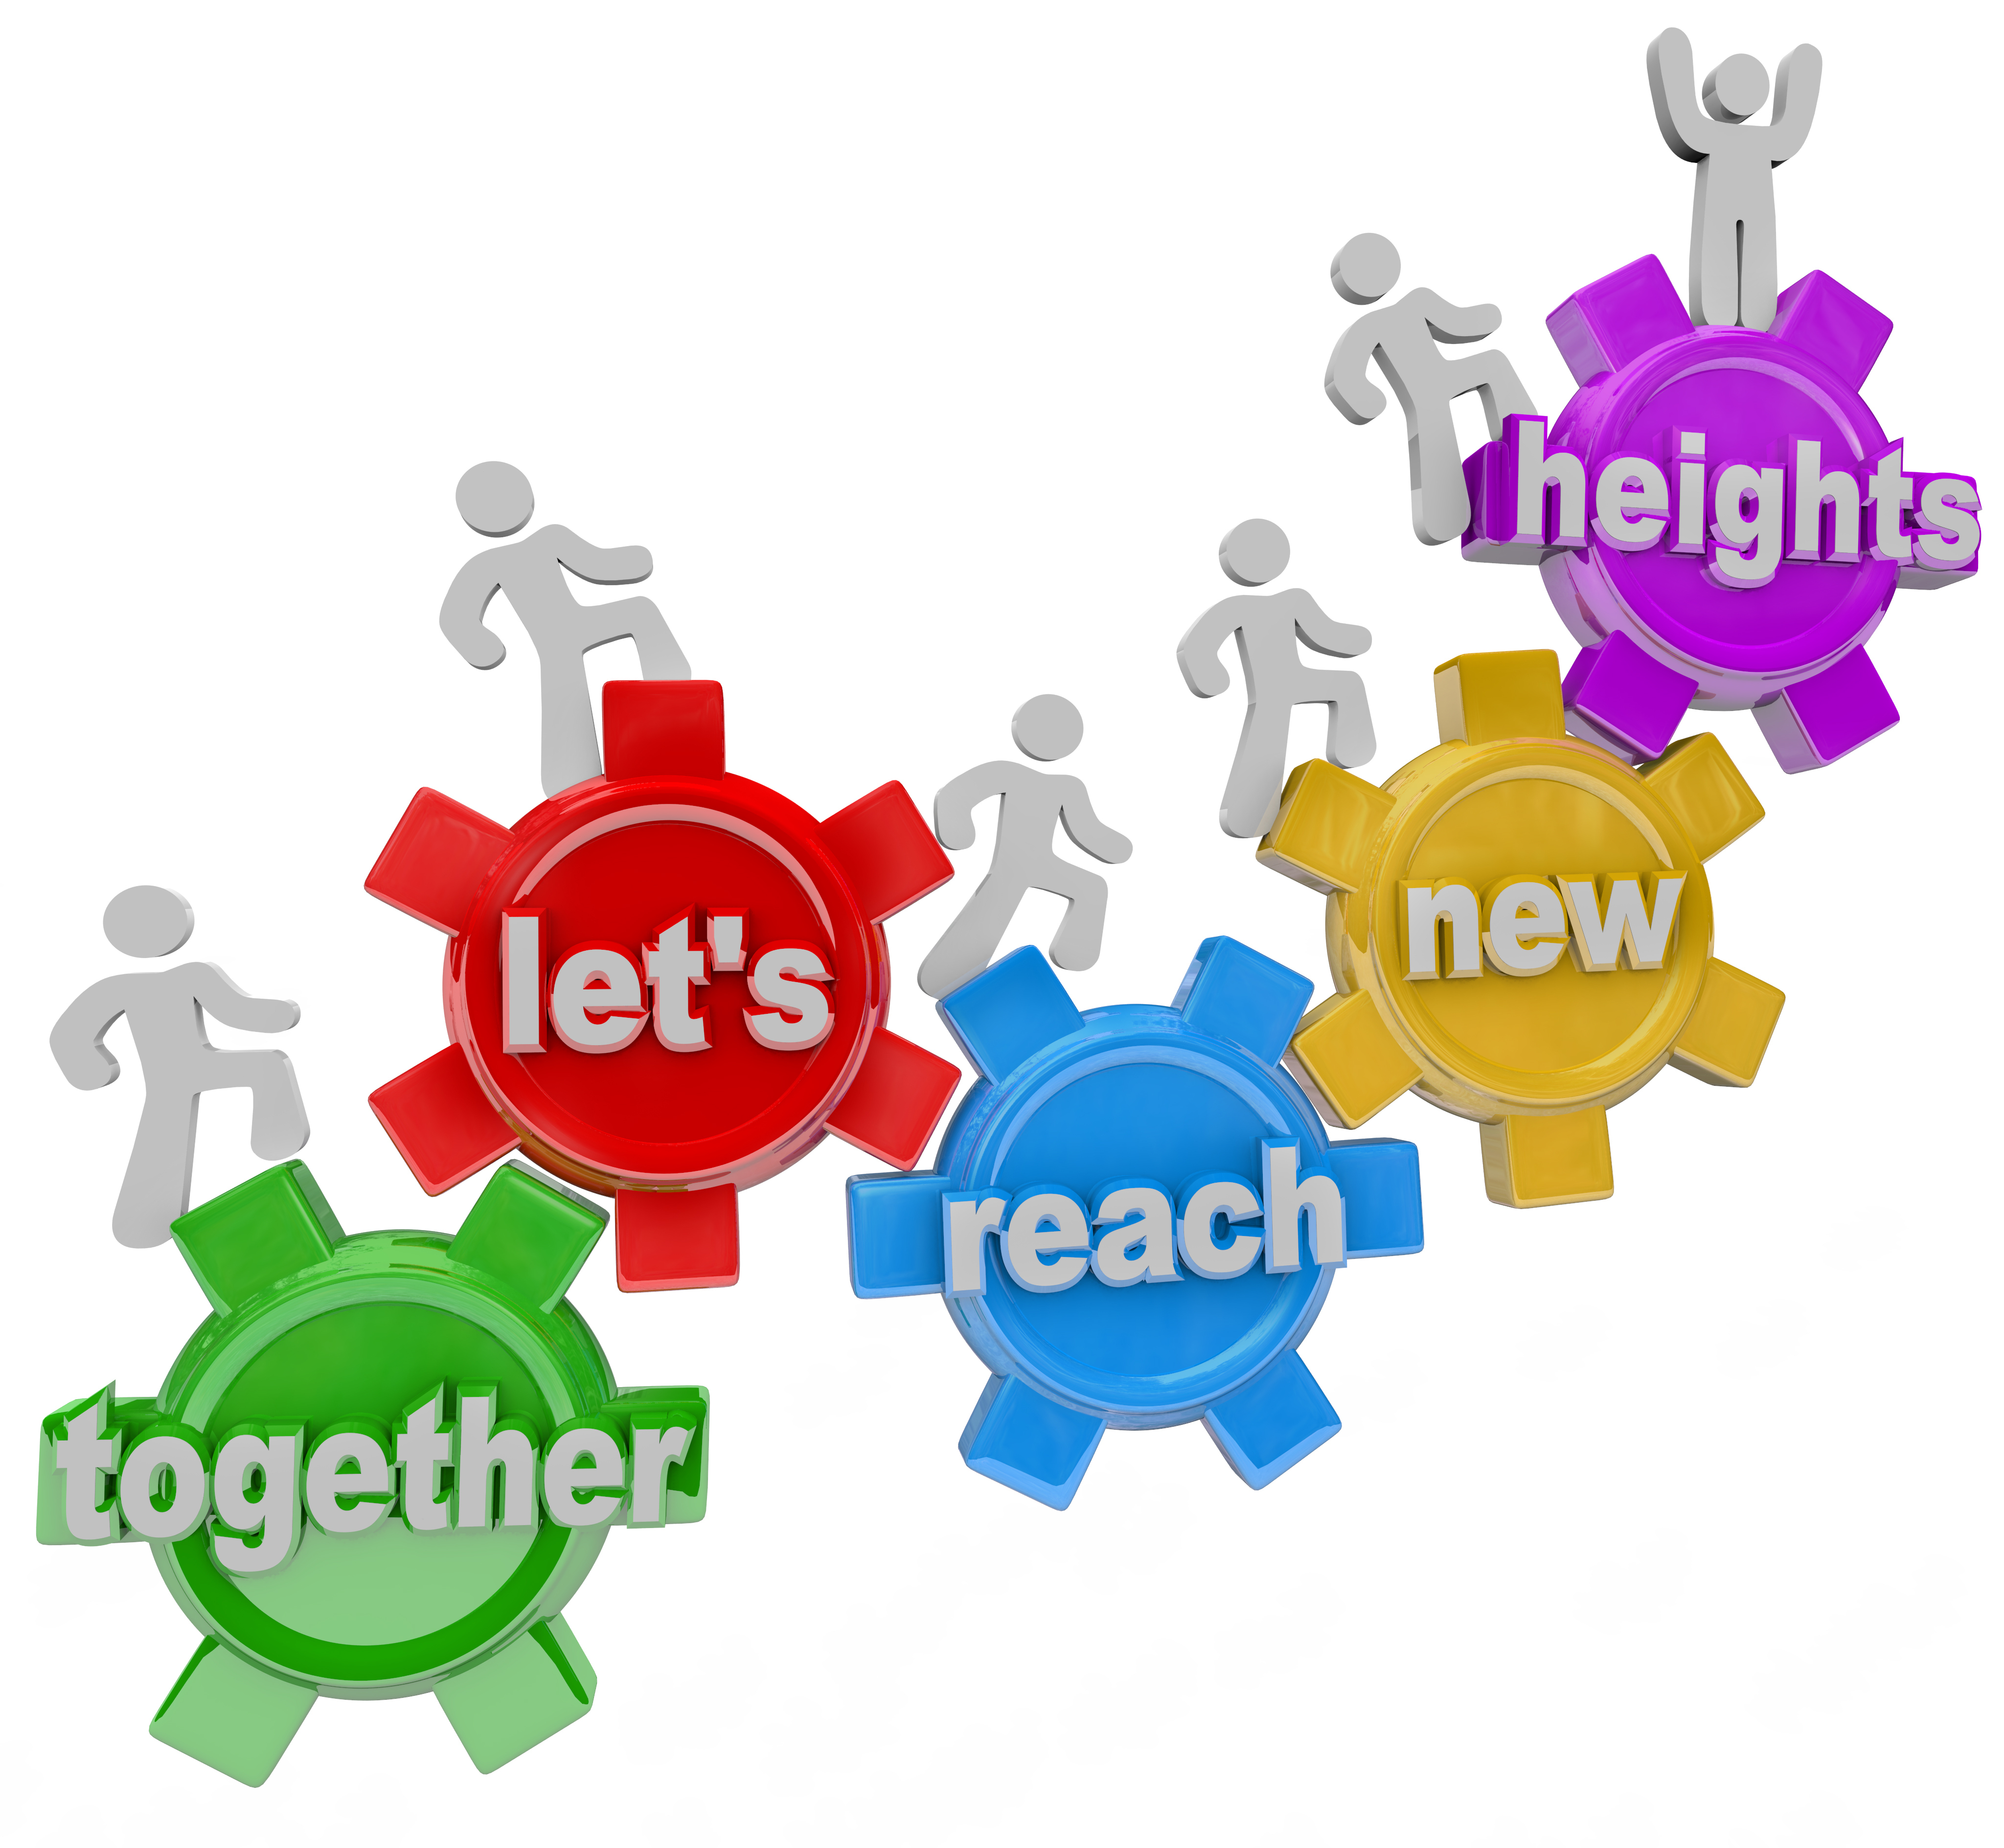 Images for free download. Teamwork clipart one team